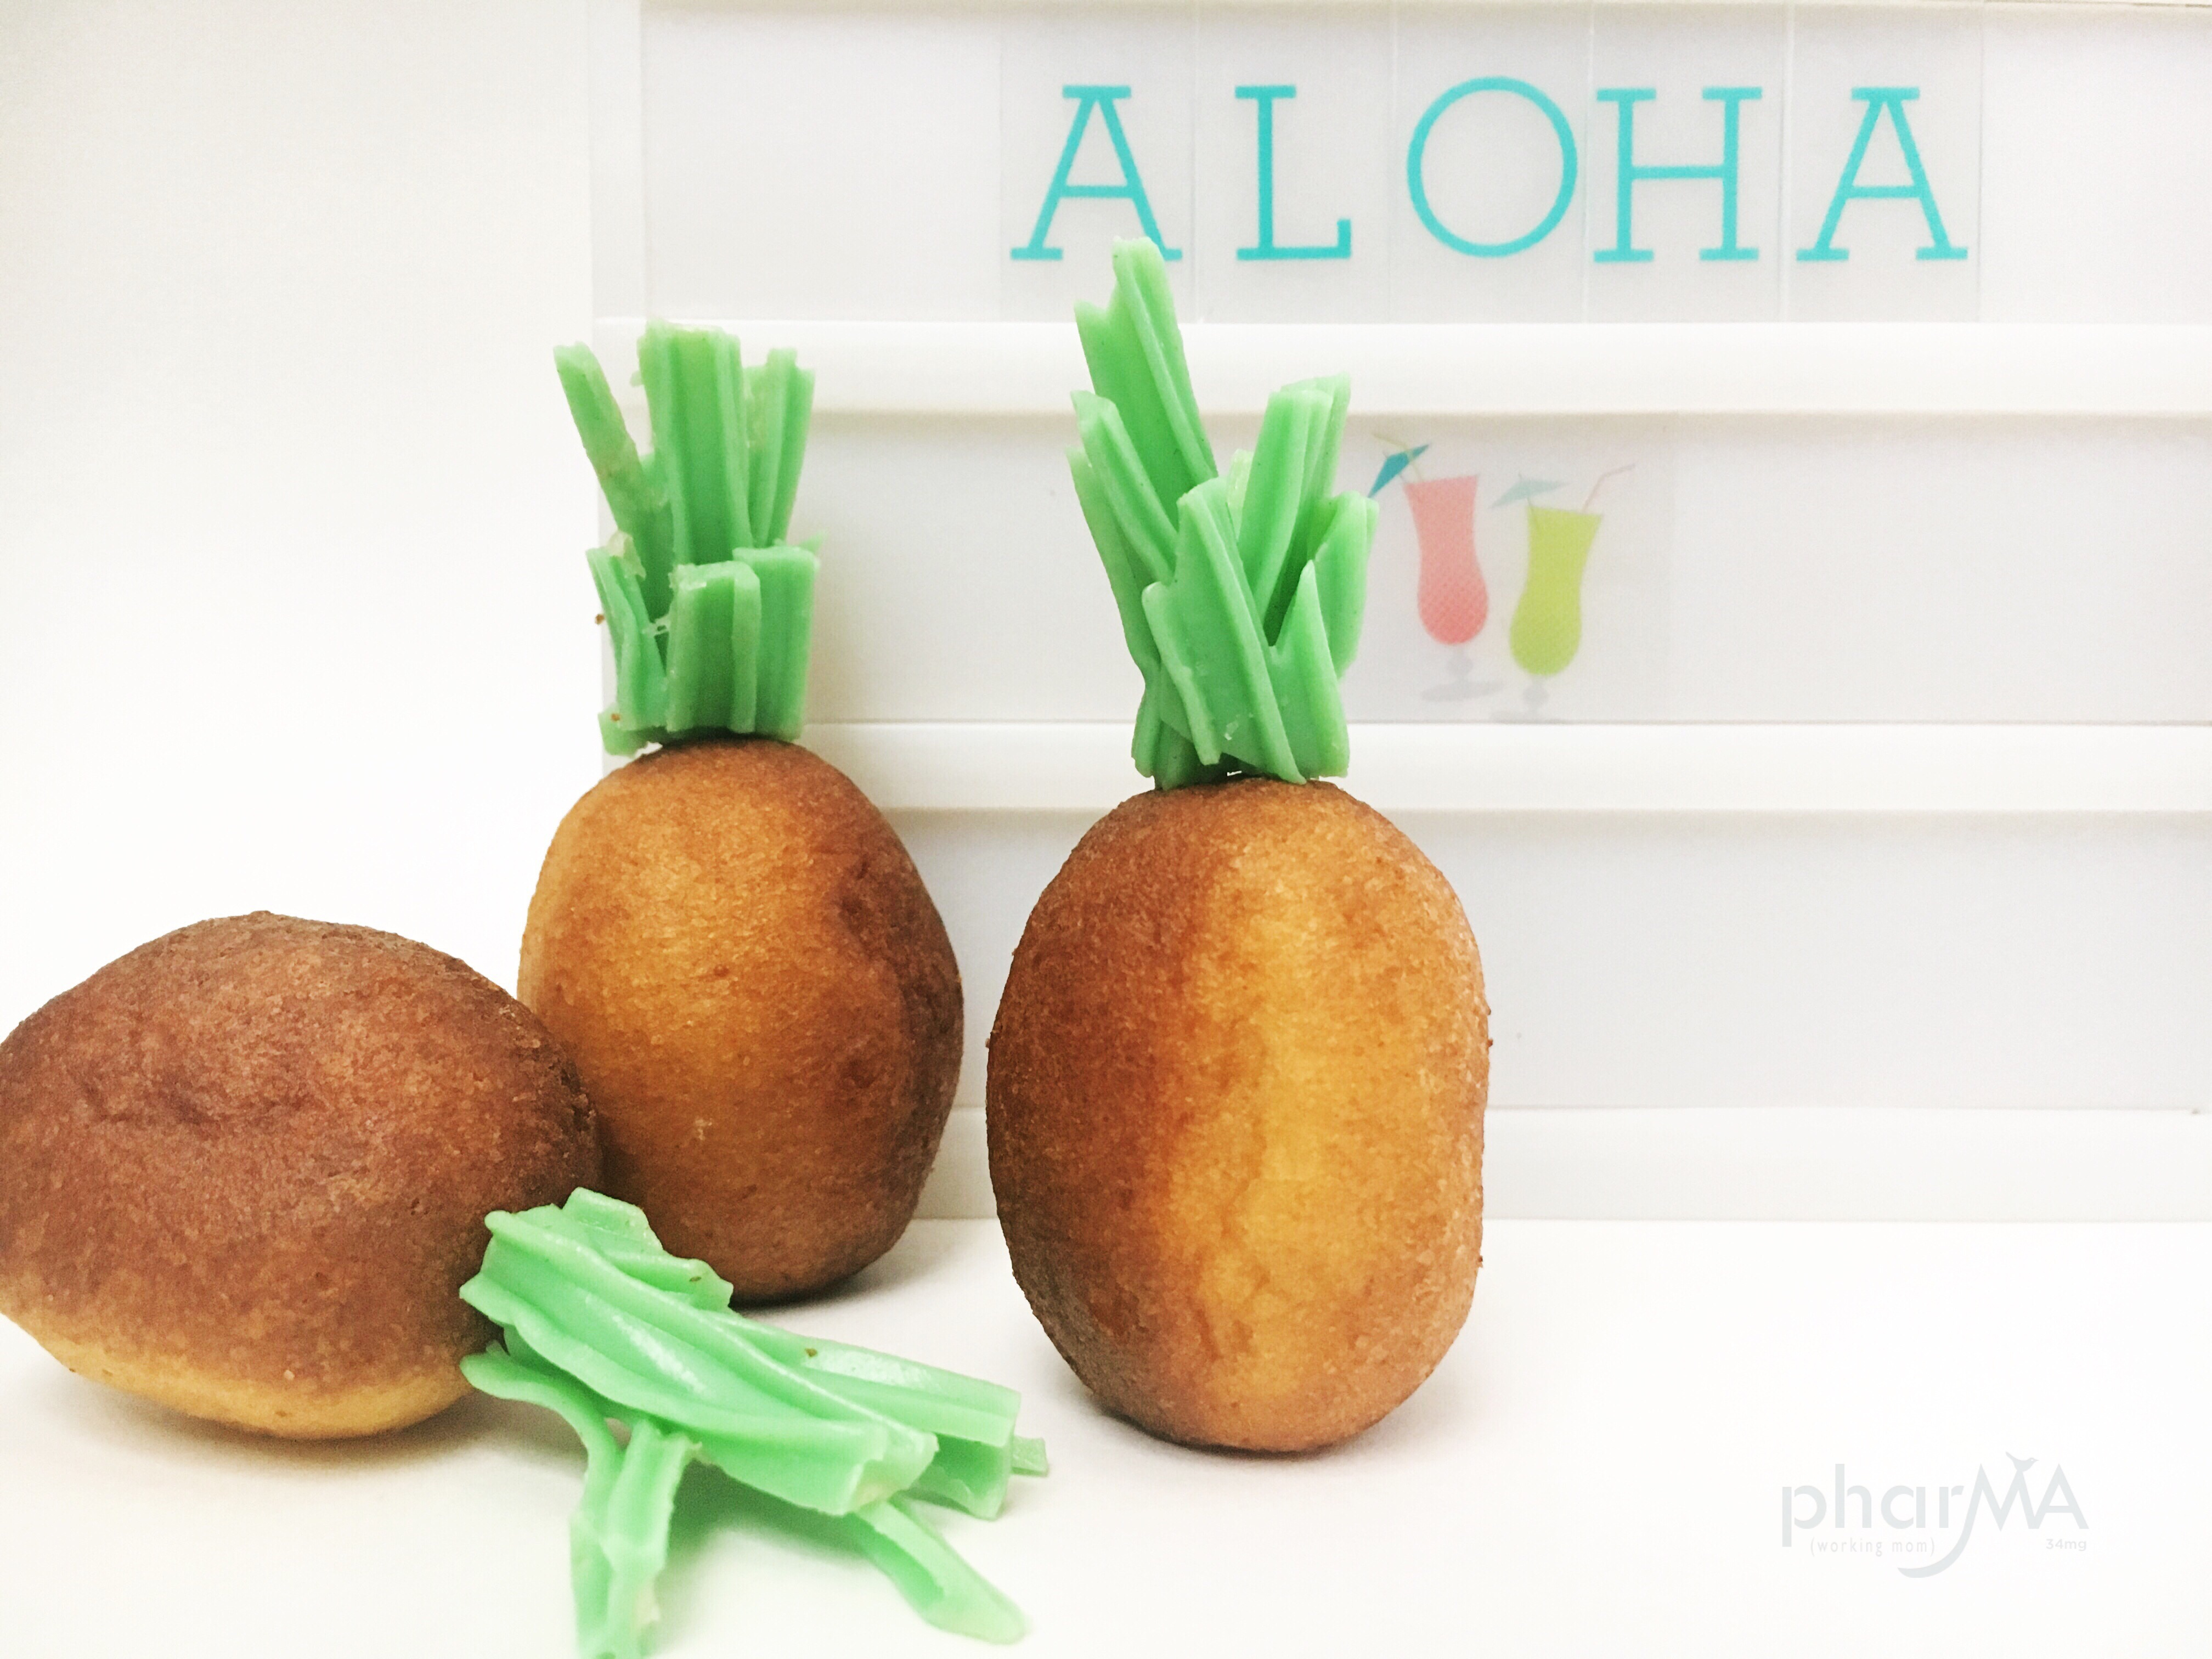 Edible crafts creative food craft ideas these adorable diy pineapple donut holes will be the hit of your next tropical themed luau or pool party solutioingenieria Images